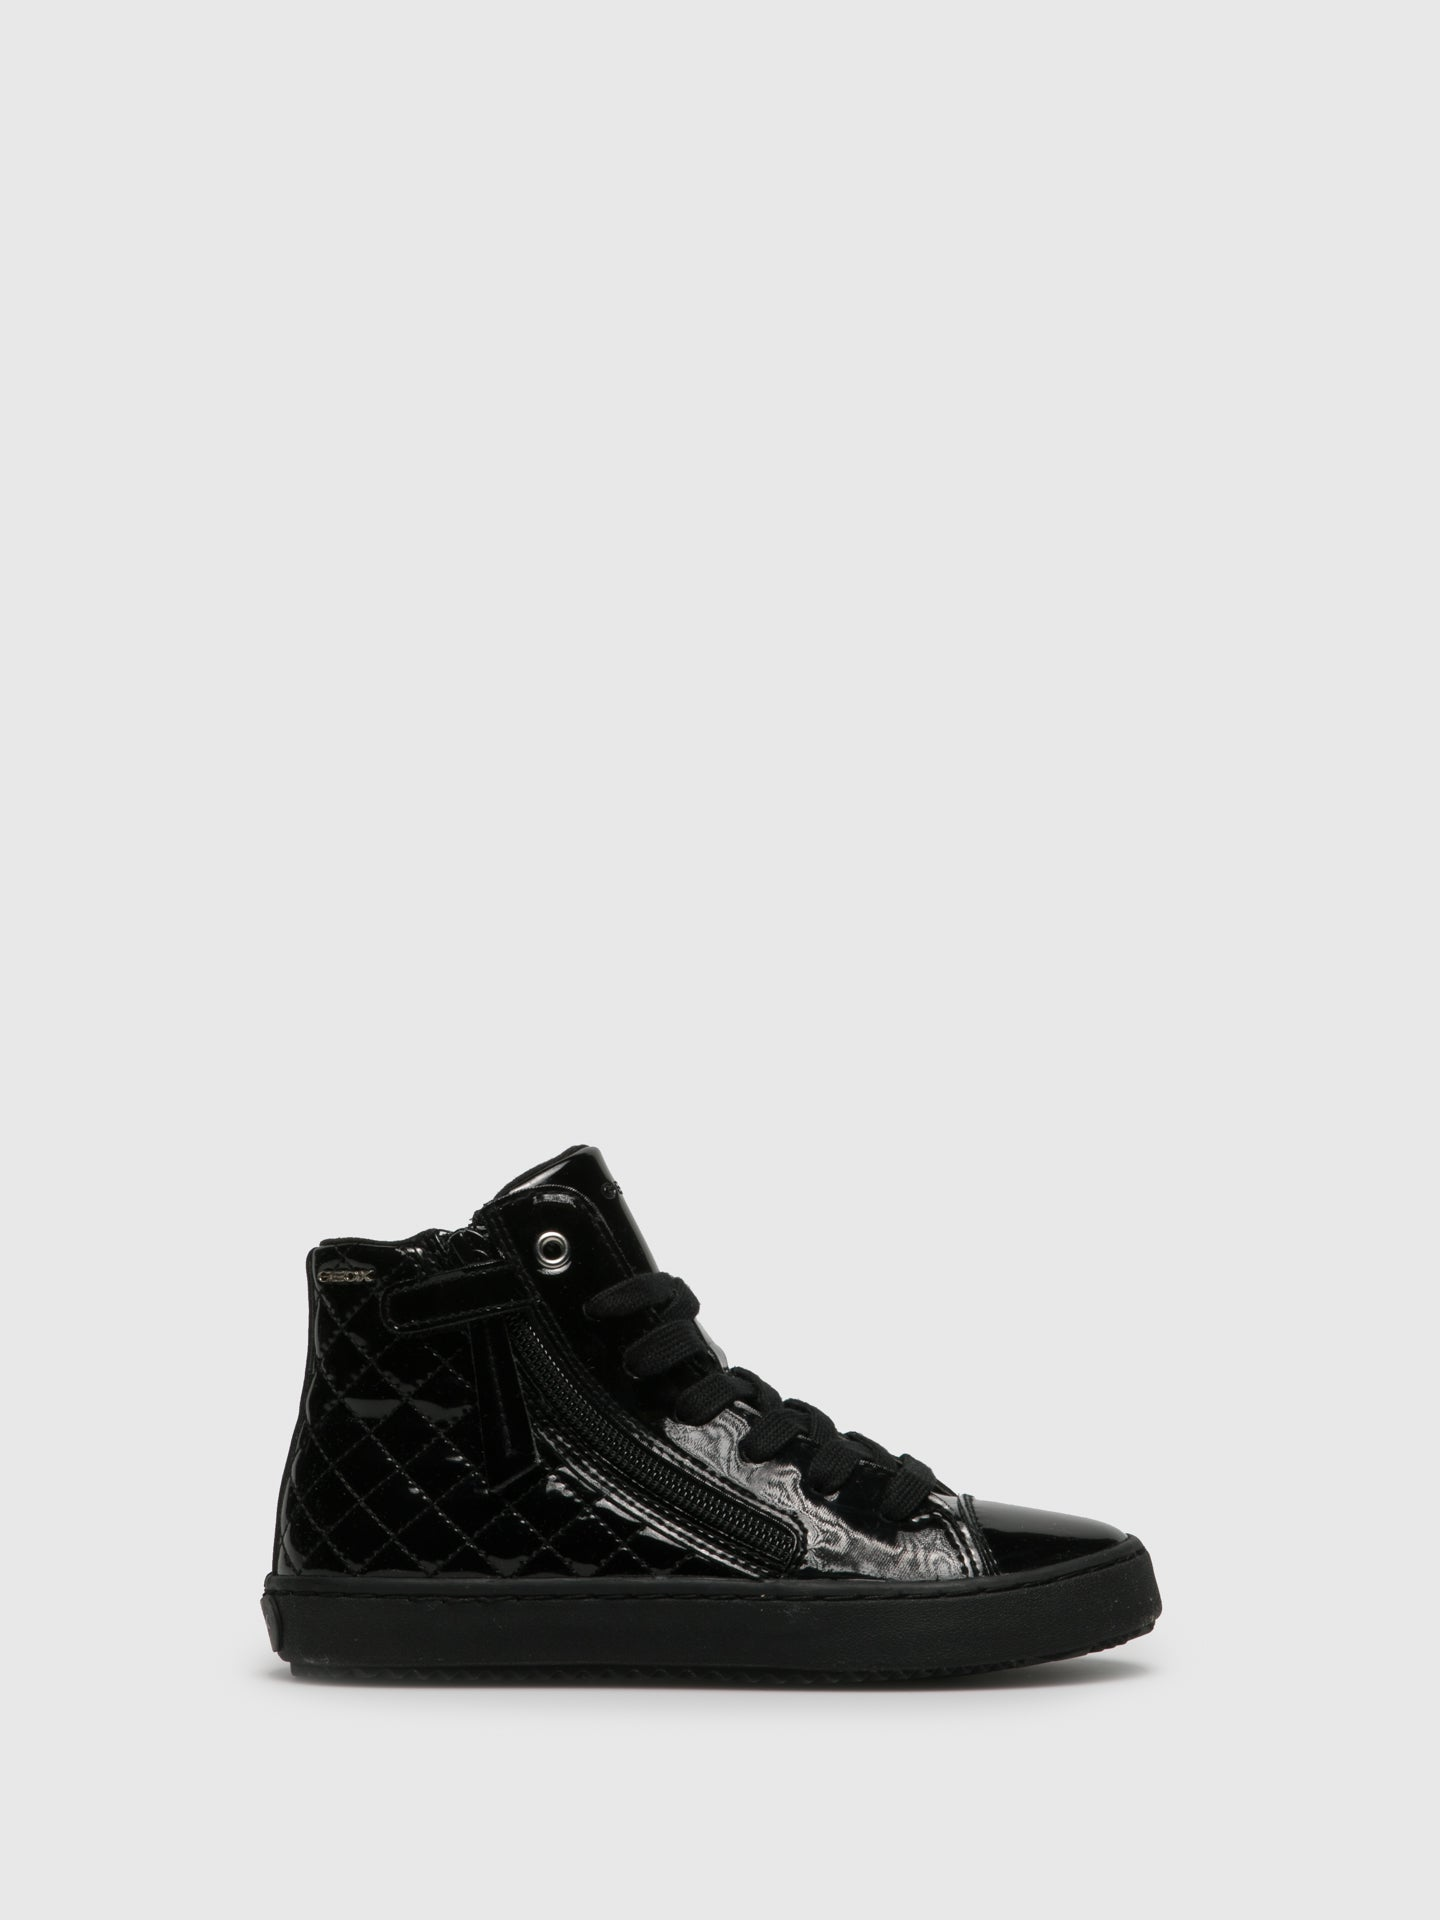 Geox Coal Black Hi-Top Trainers